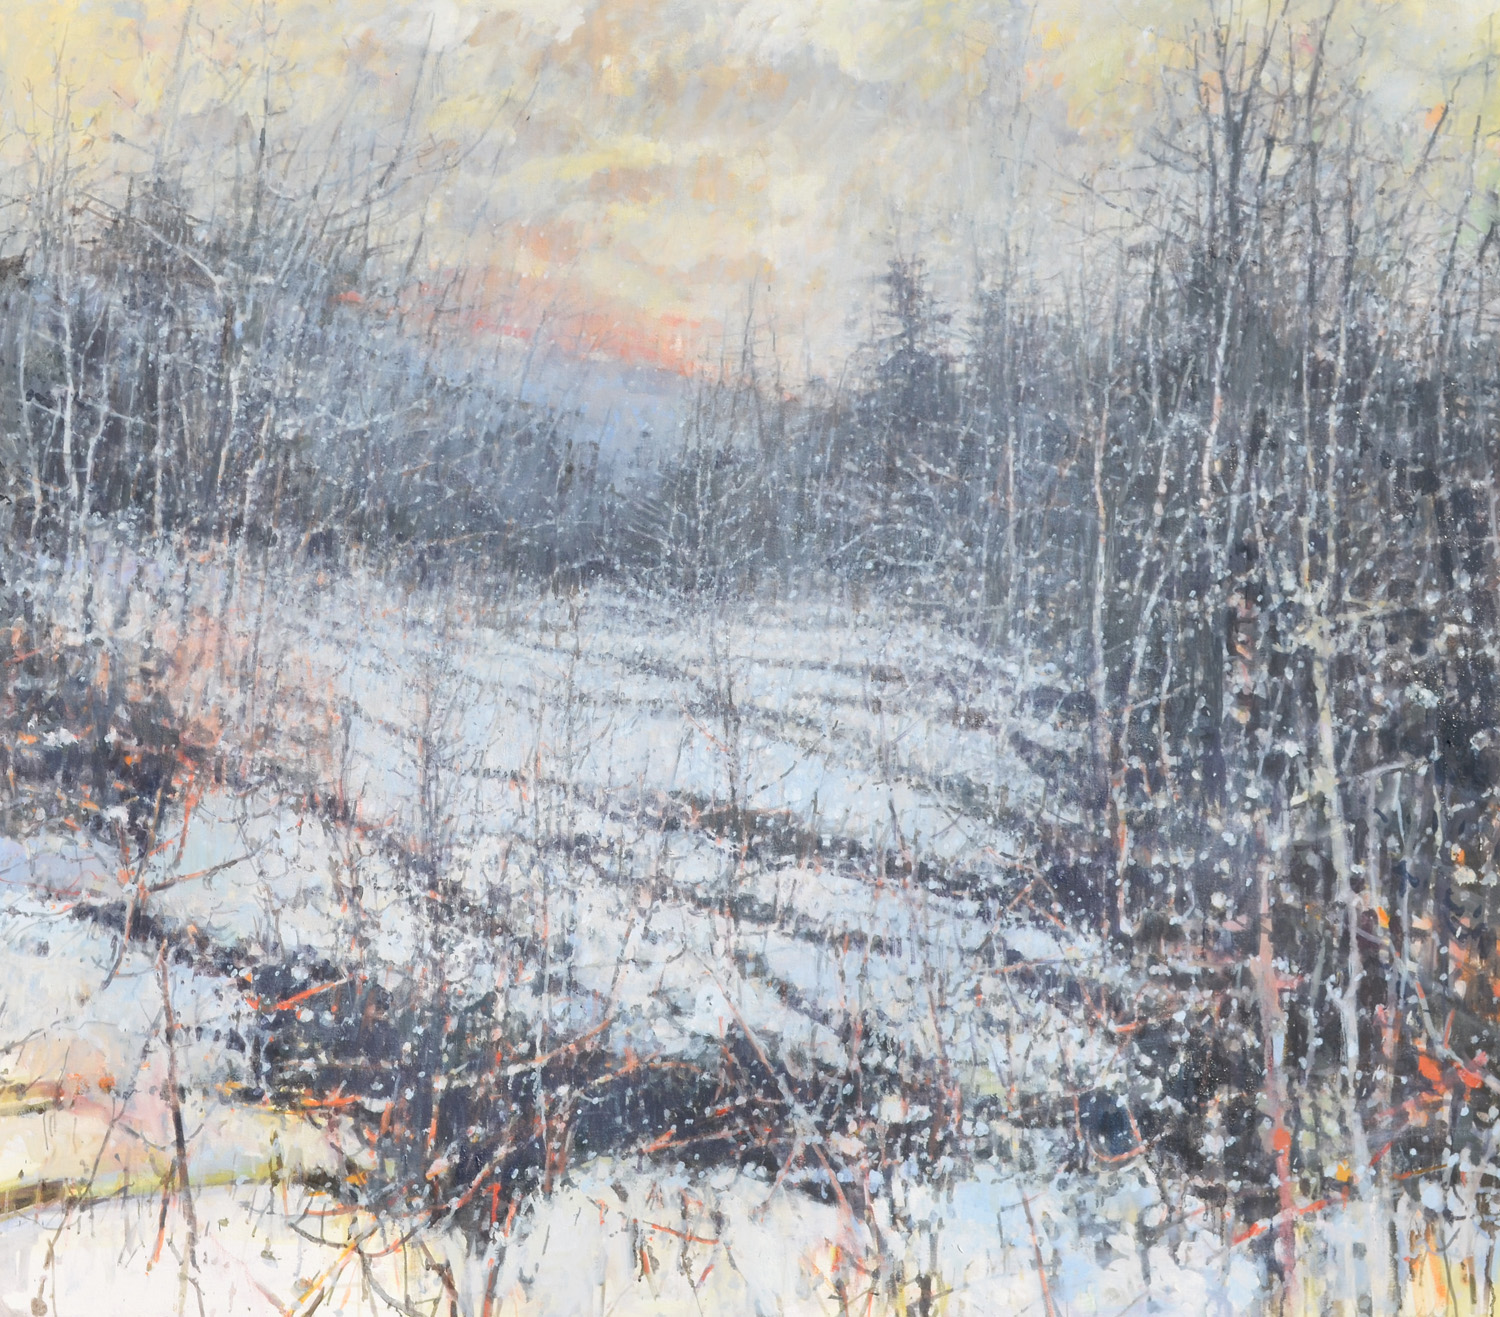 "Winter, South Branch Tunkhannock Creek,  William Chickillo, 48"" x 55"" oil on canvas on board"